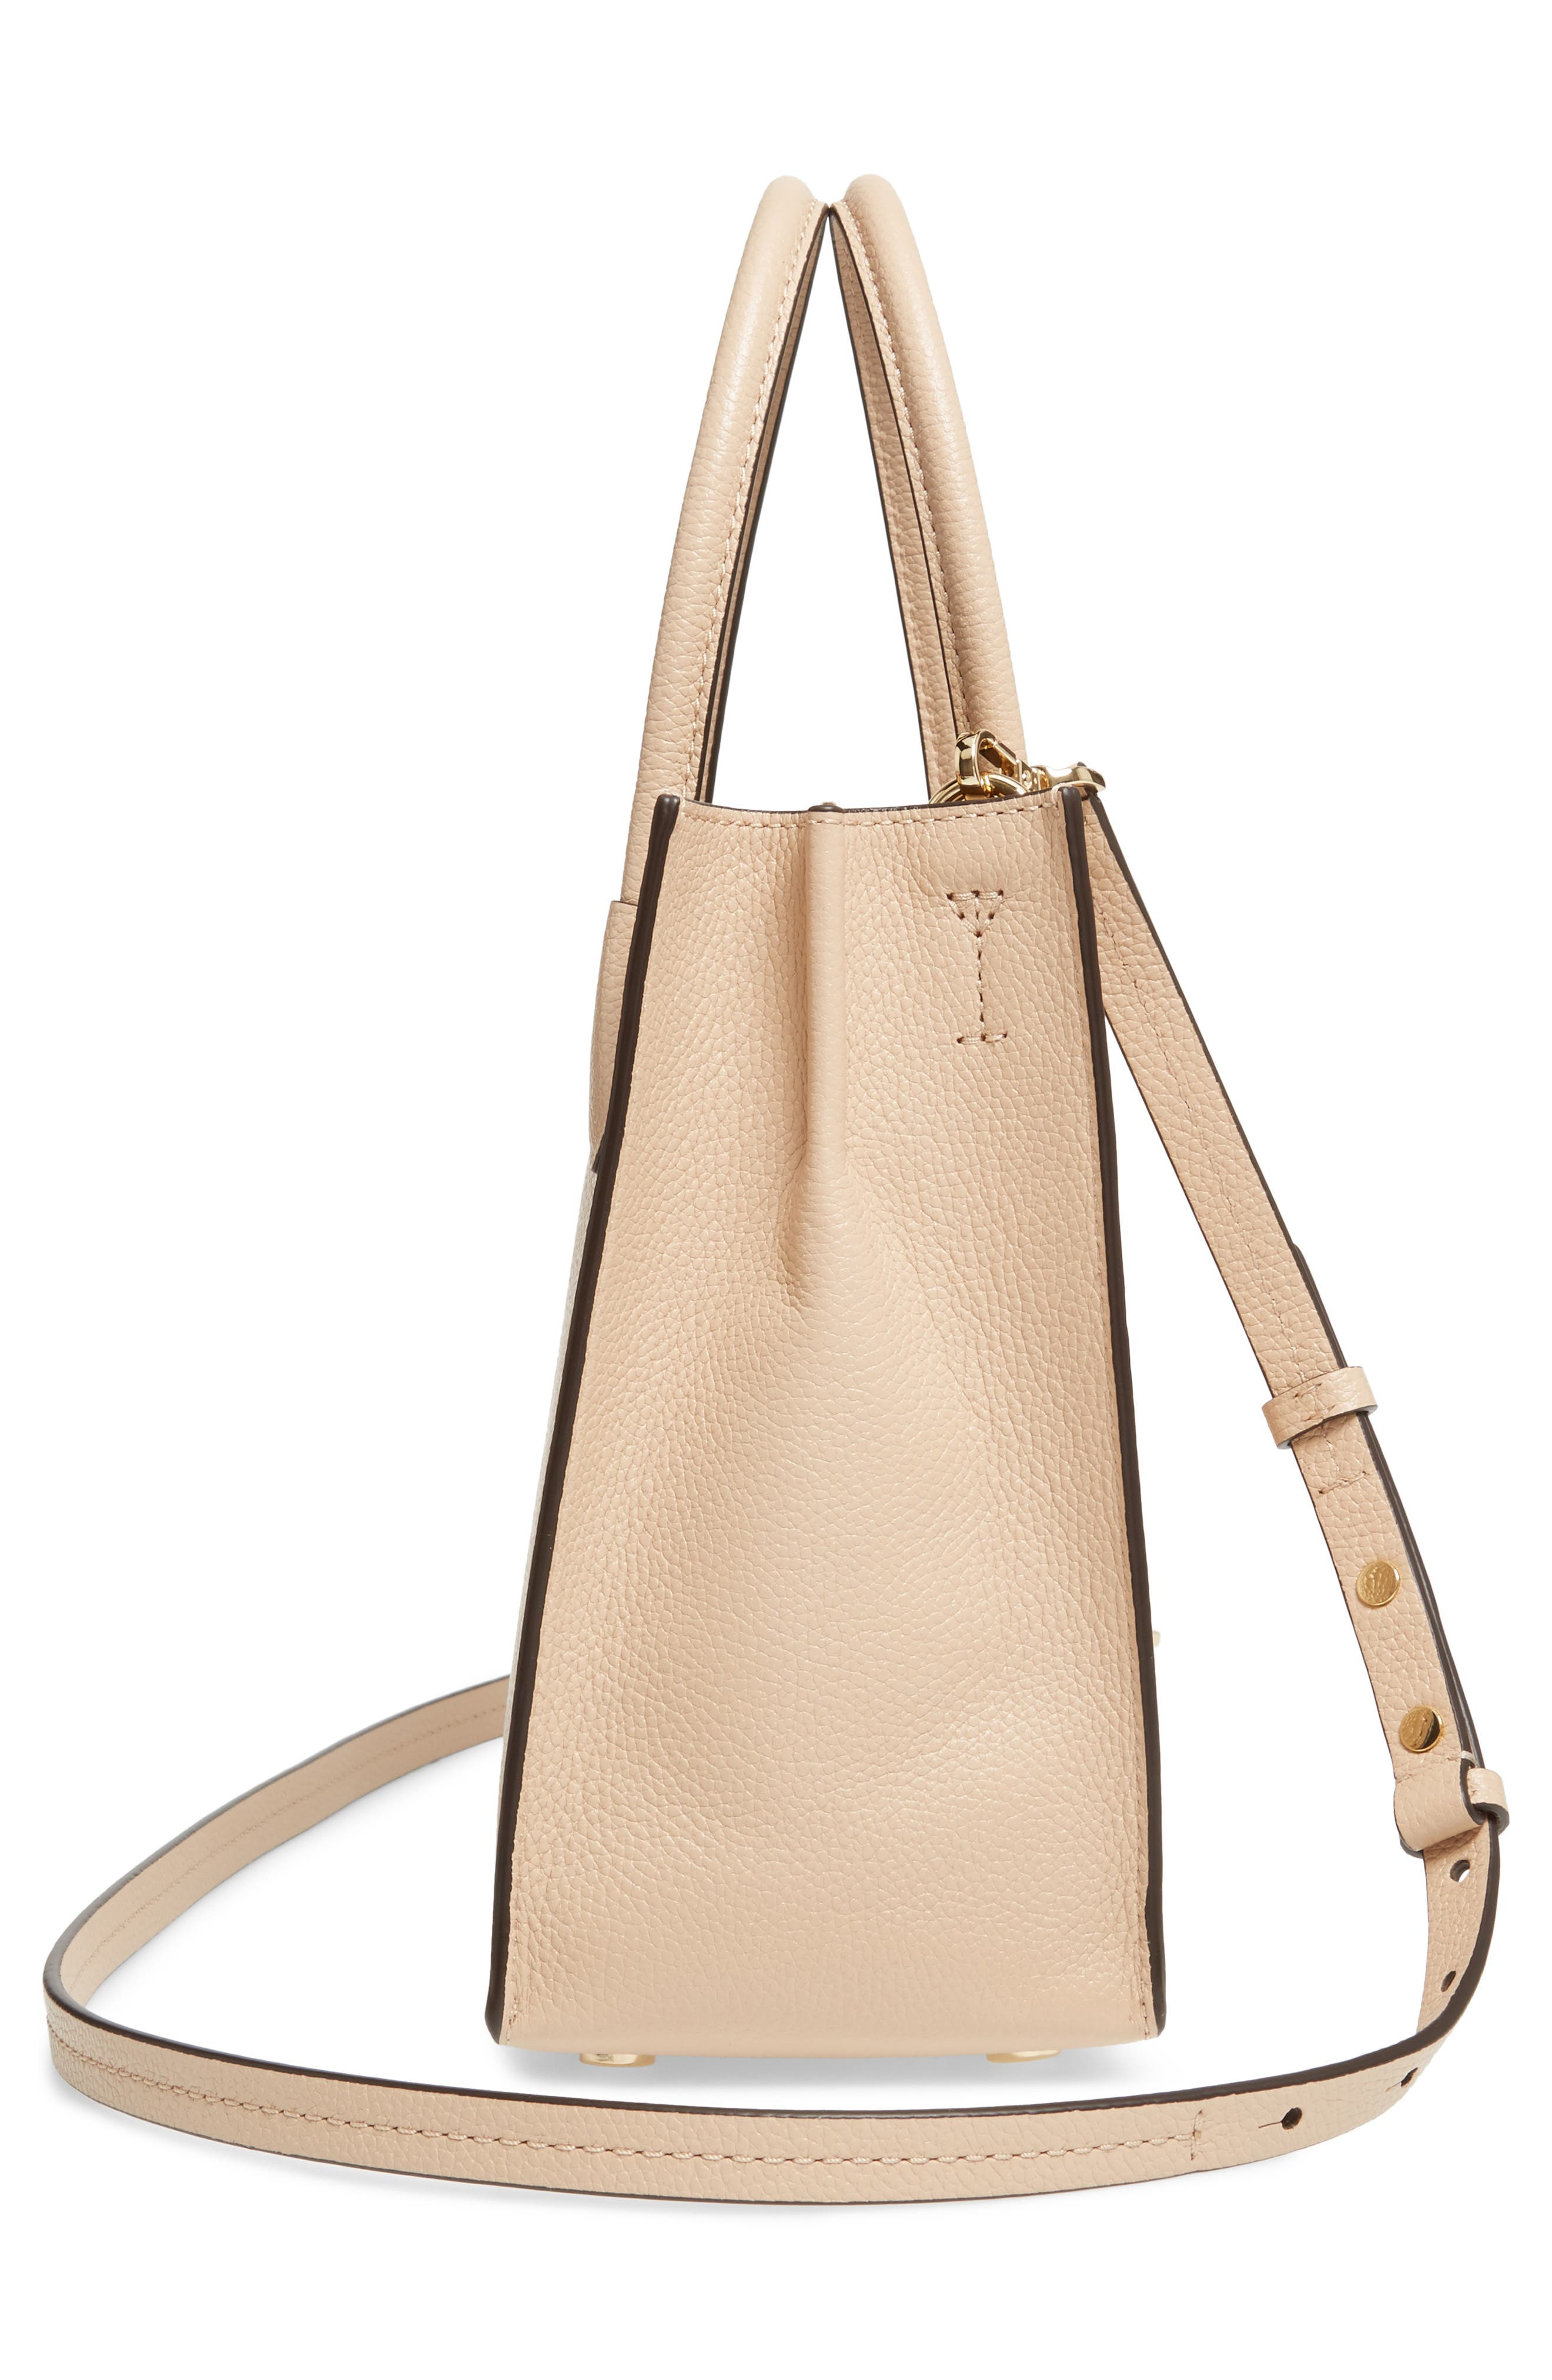 'Medium Mercer' Leather Tote,                             Alternate thumbnail 3, color,                             Oyster